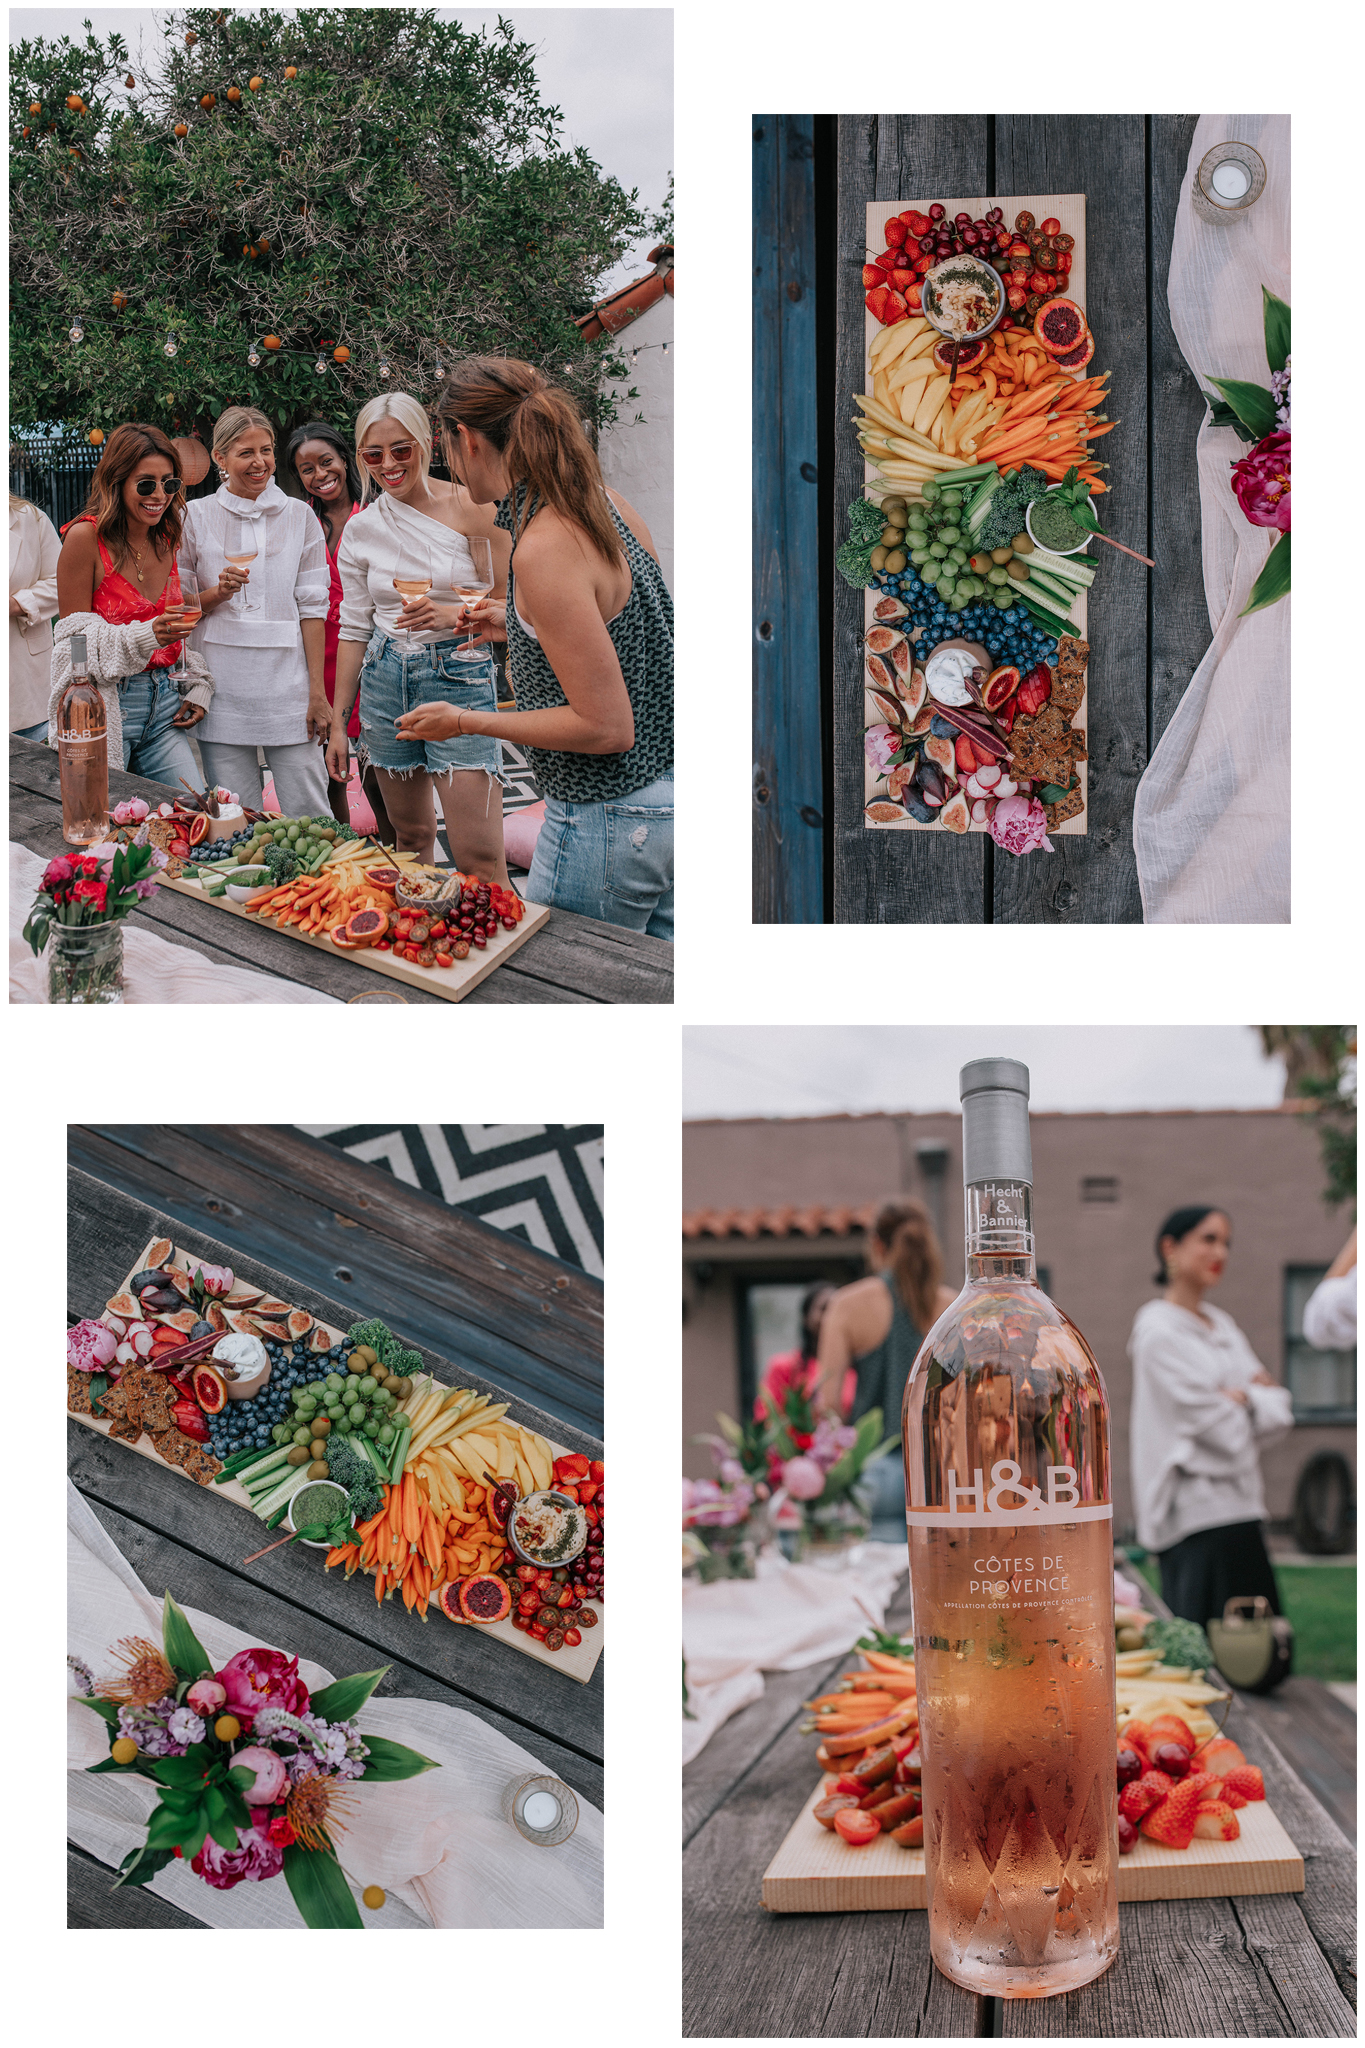 HOW TO HOST THE PERFECT SUMMER SOIRÉE IN LA